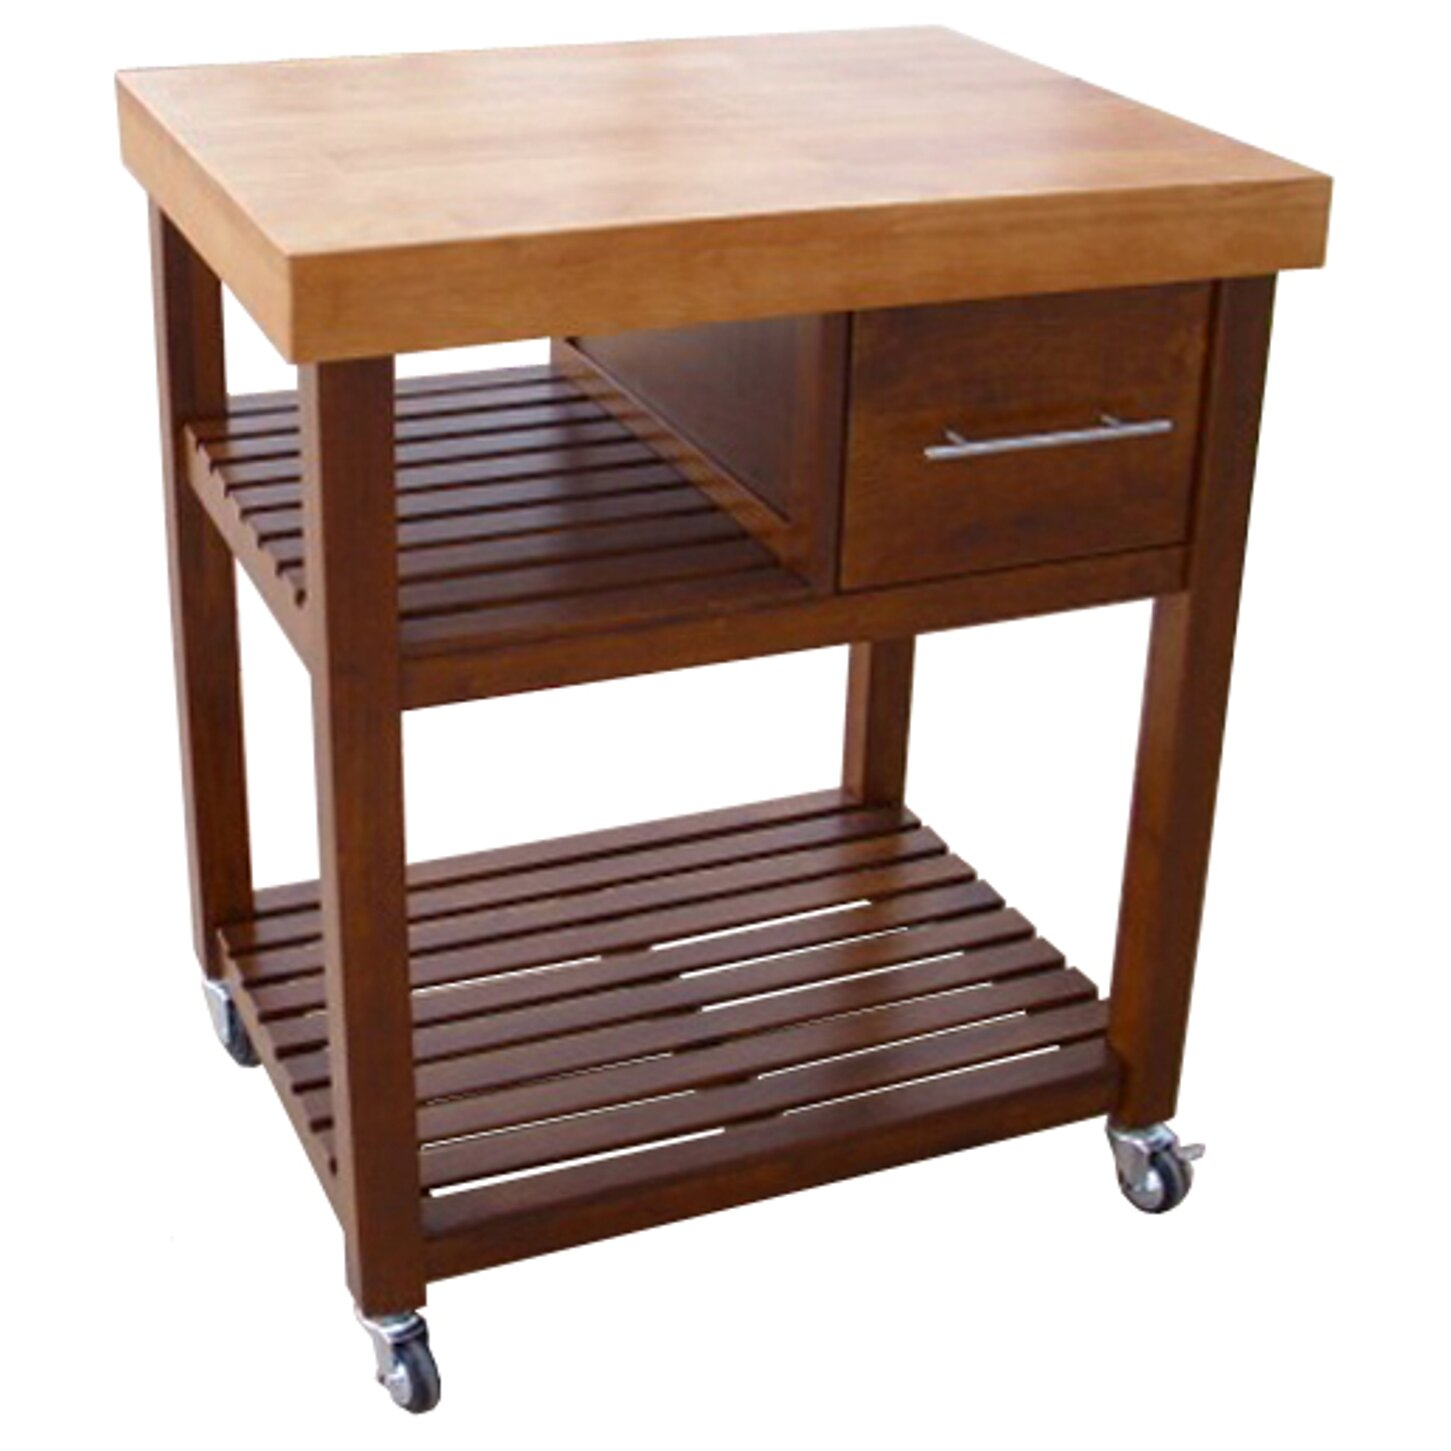 Deason Dining Essentials Kitchen Cart with Butcher Block Top Wayfair